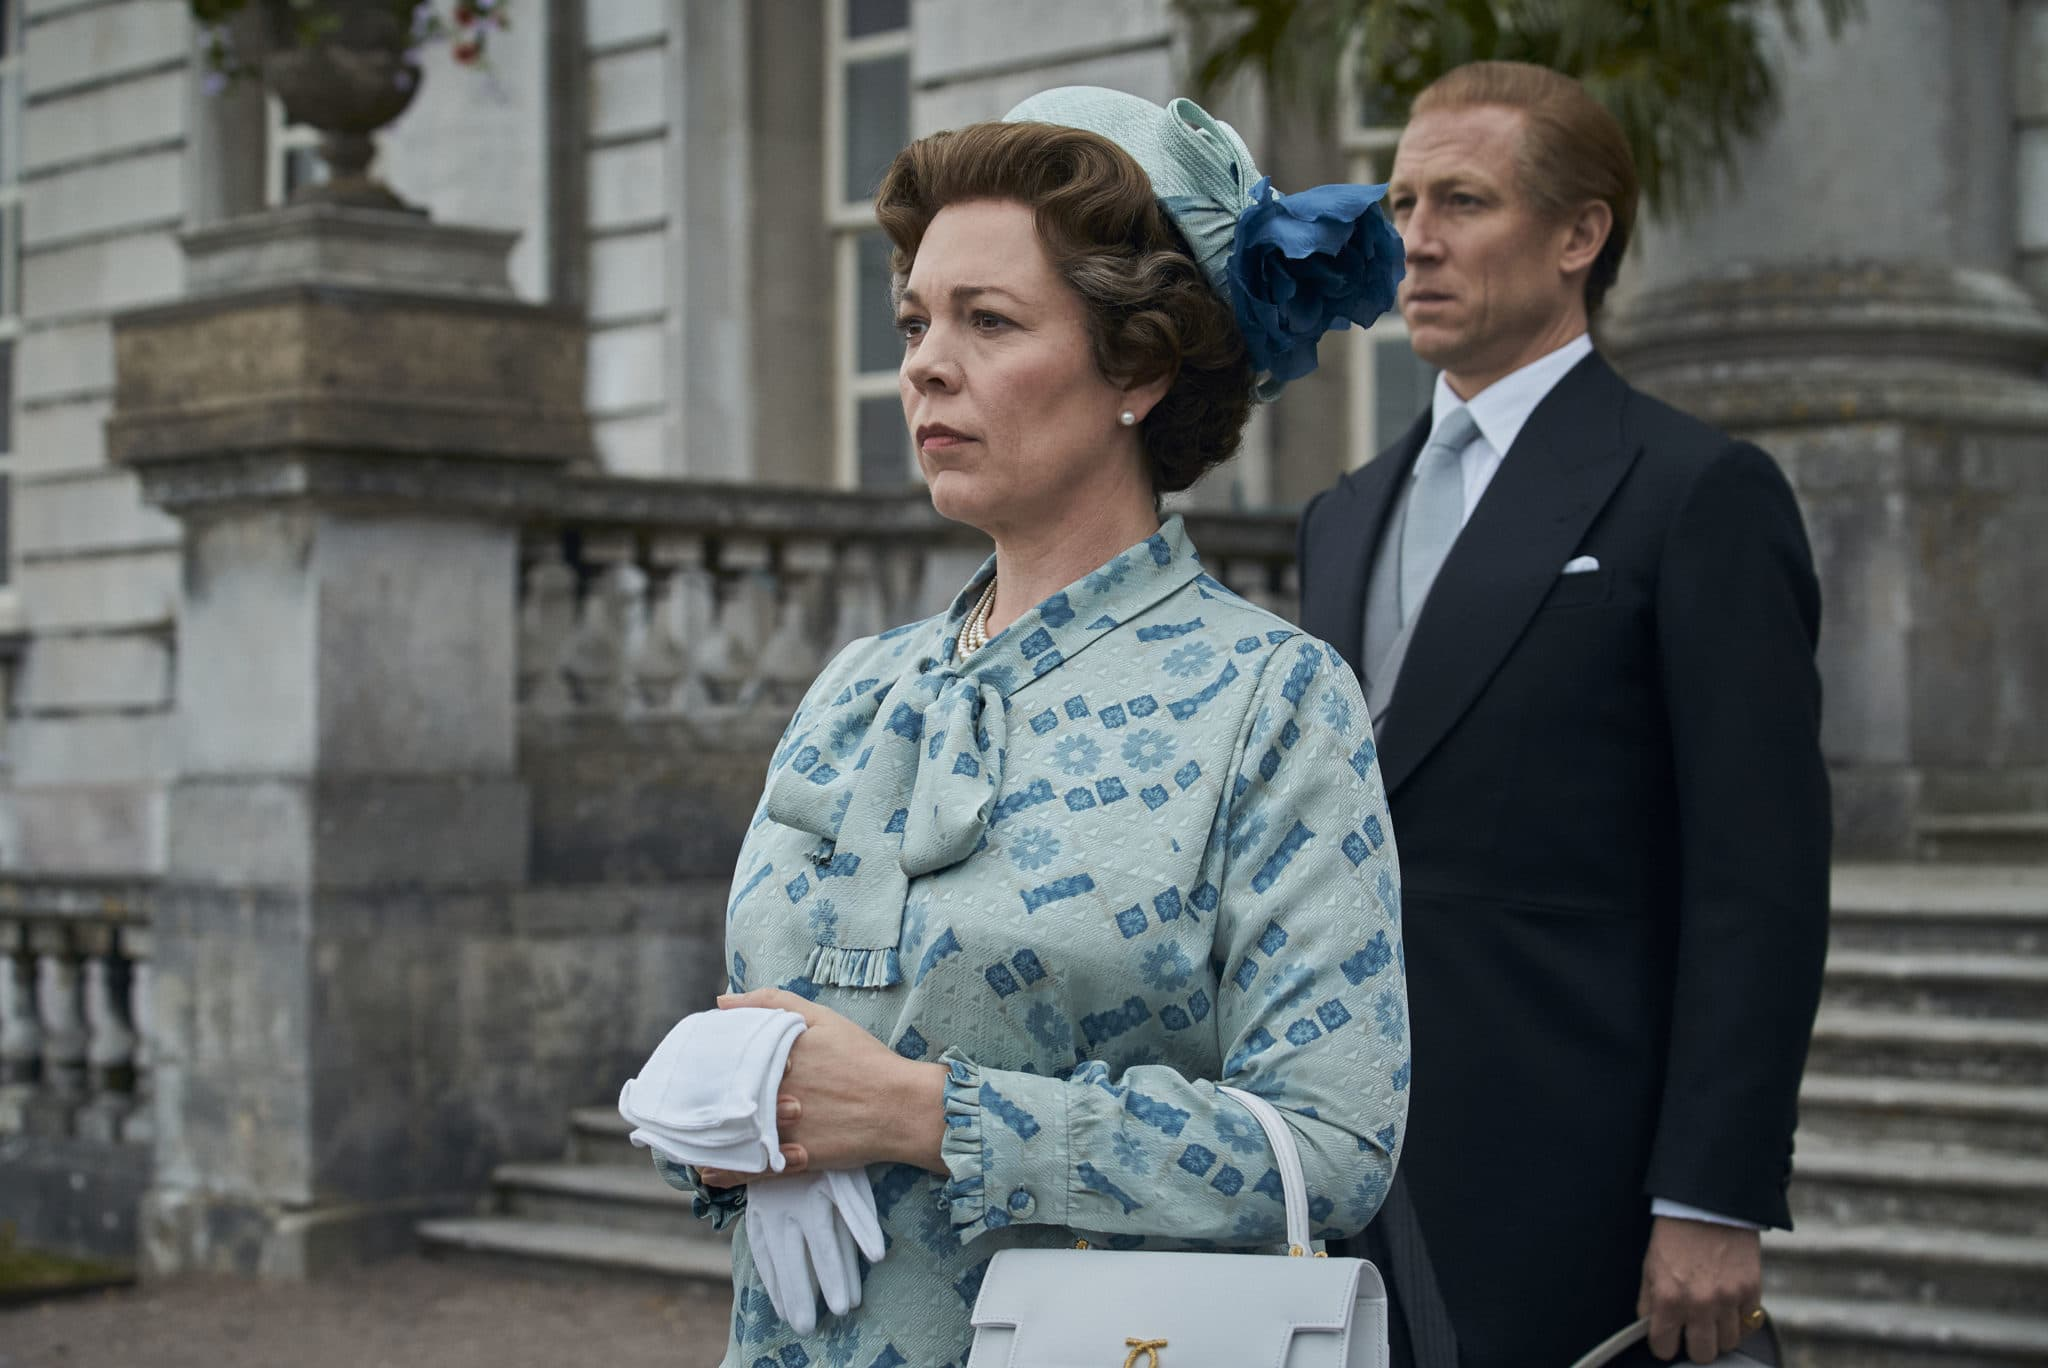 Olivia Colman as the Queen standing on the steps of the palace with Prince Philip behind her, in a duck-egg blue pussy-bow and pillbox hat